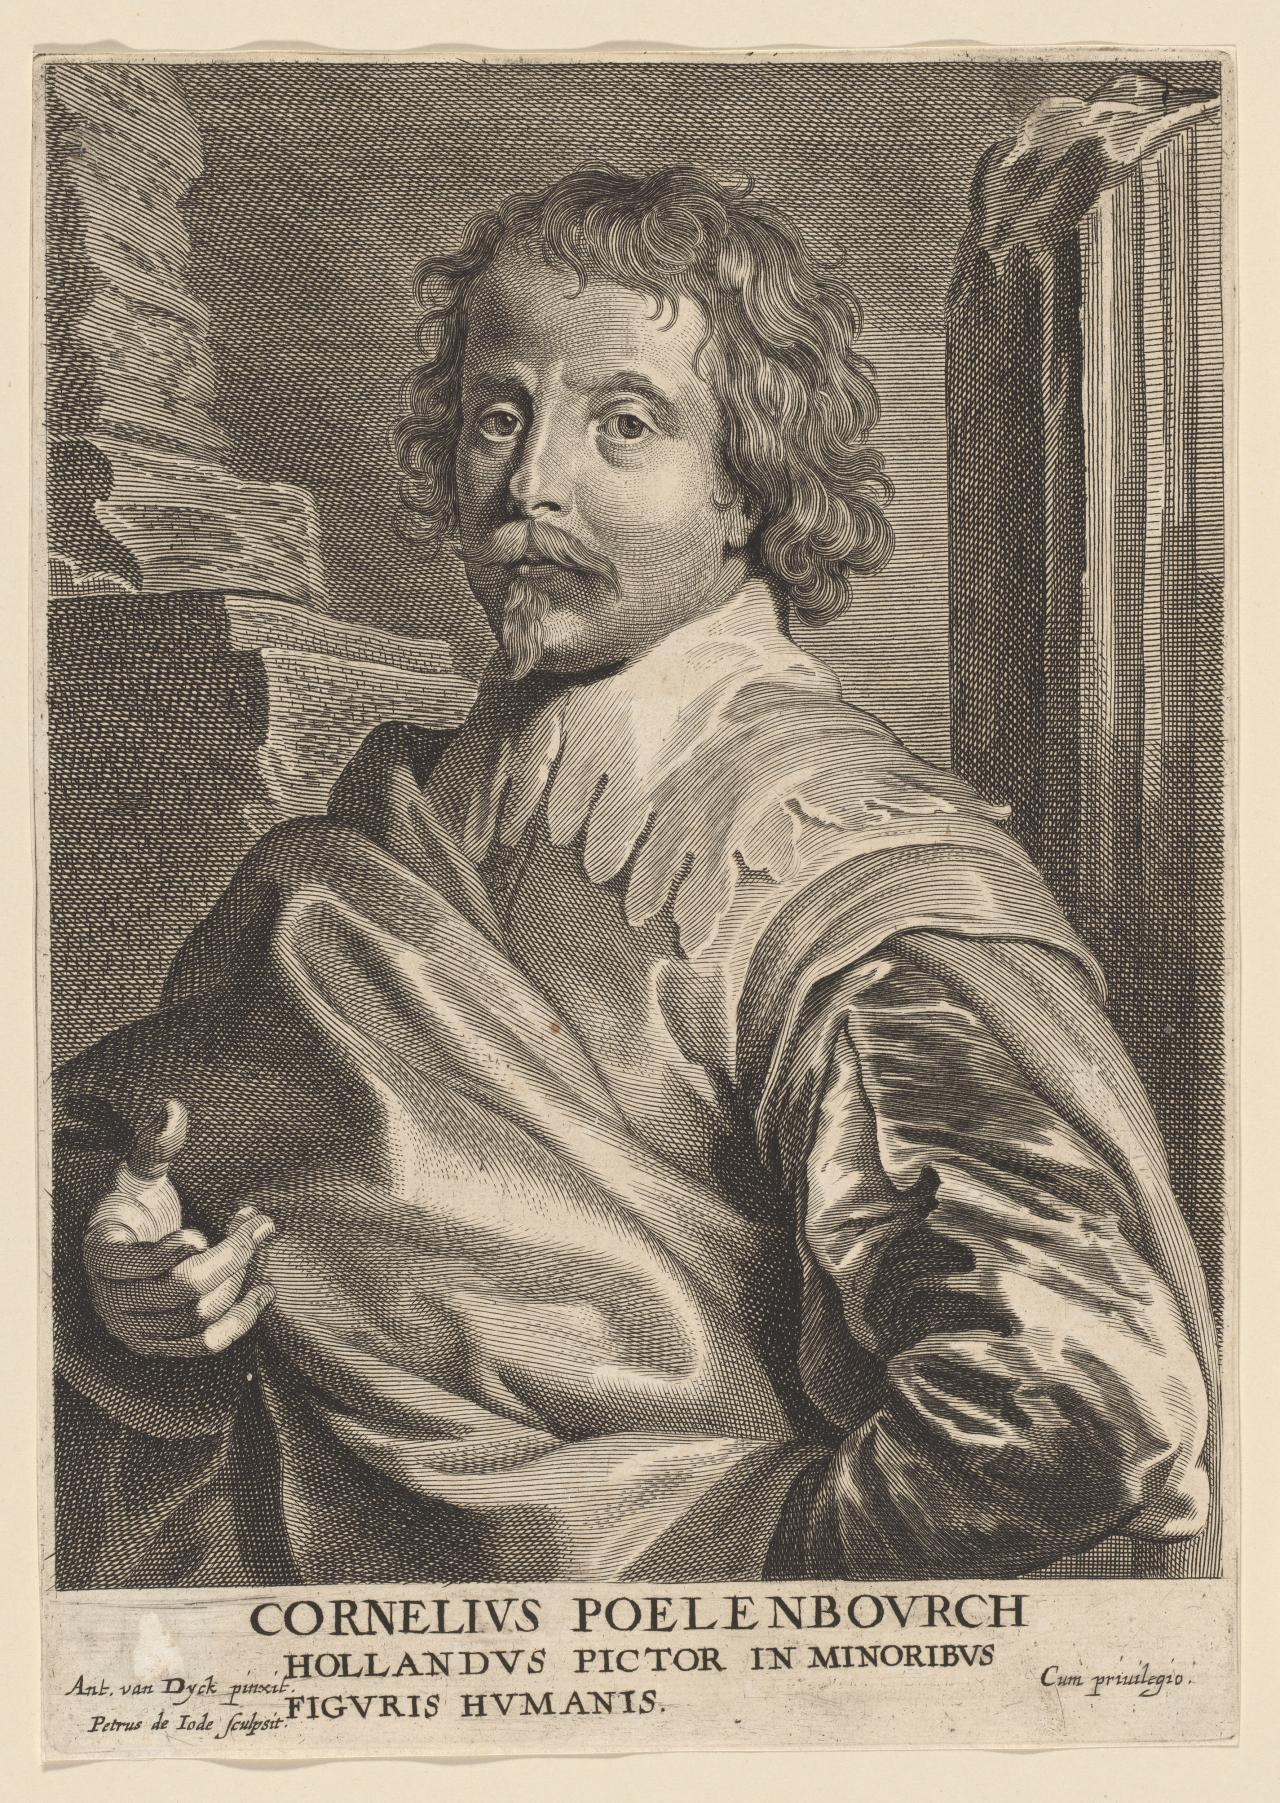 Cornelis van Poelenburch